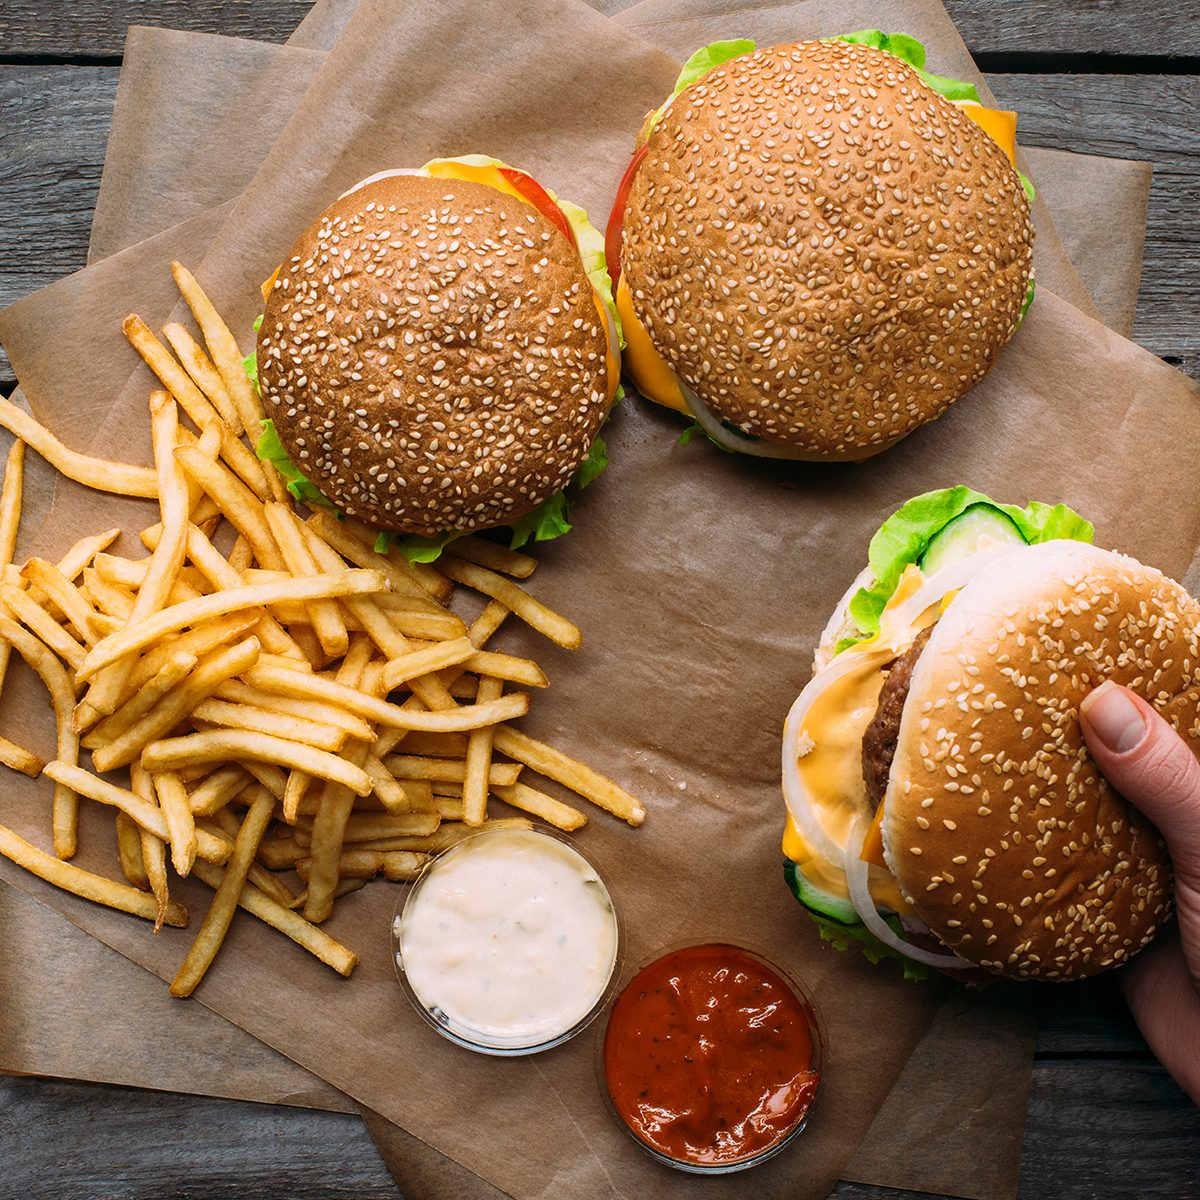 top view of hand with hamburgers, french fries and sauces on baking paper on wooden tabletop